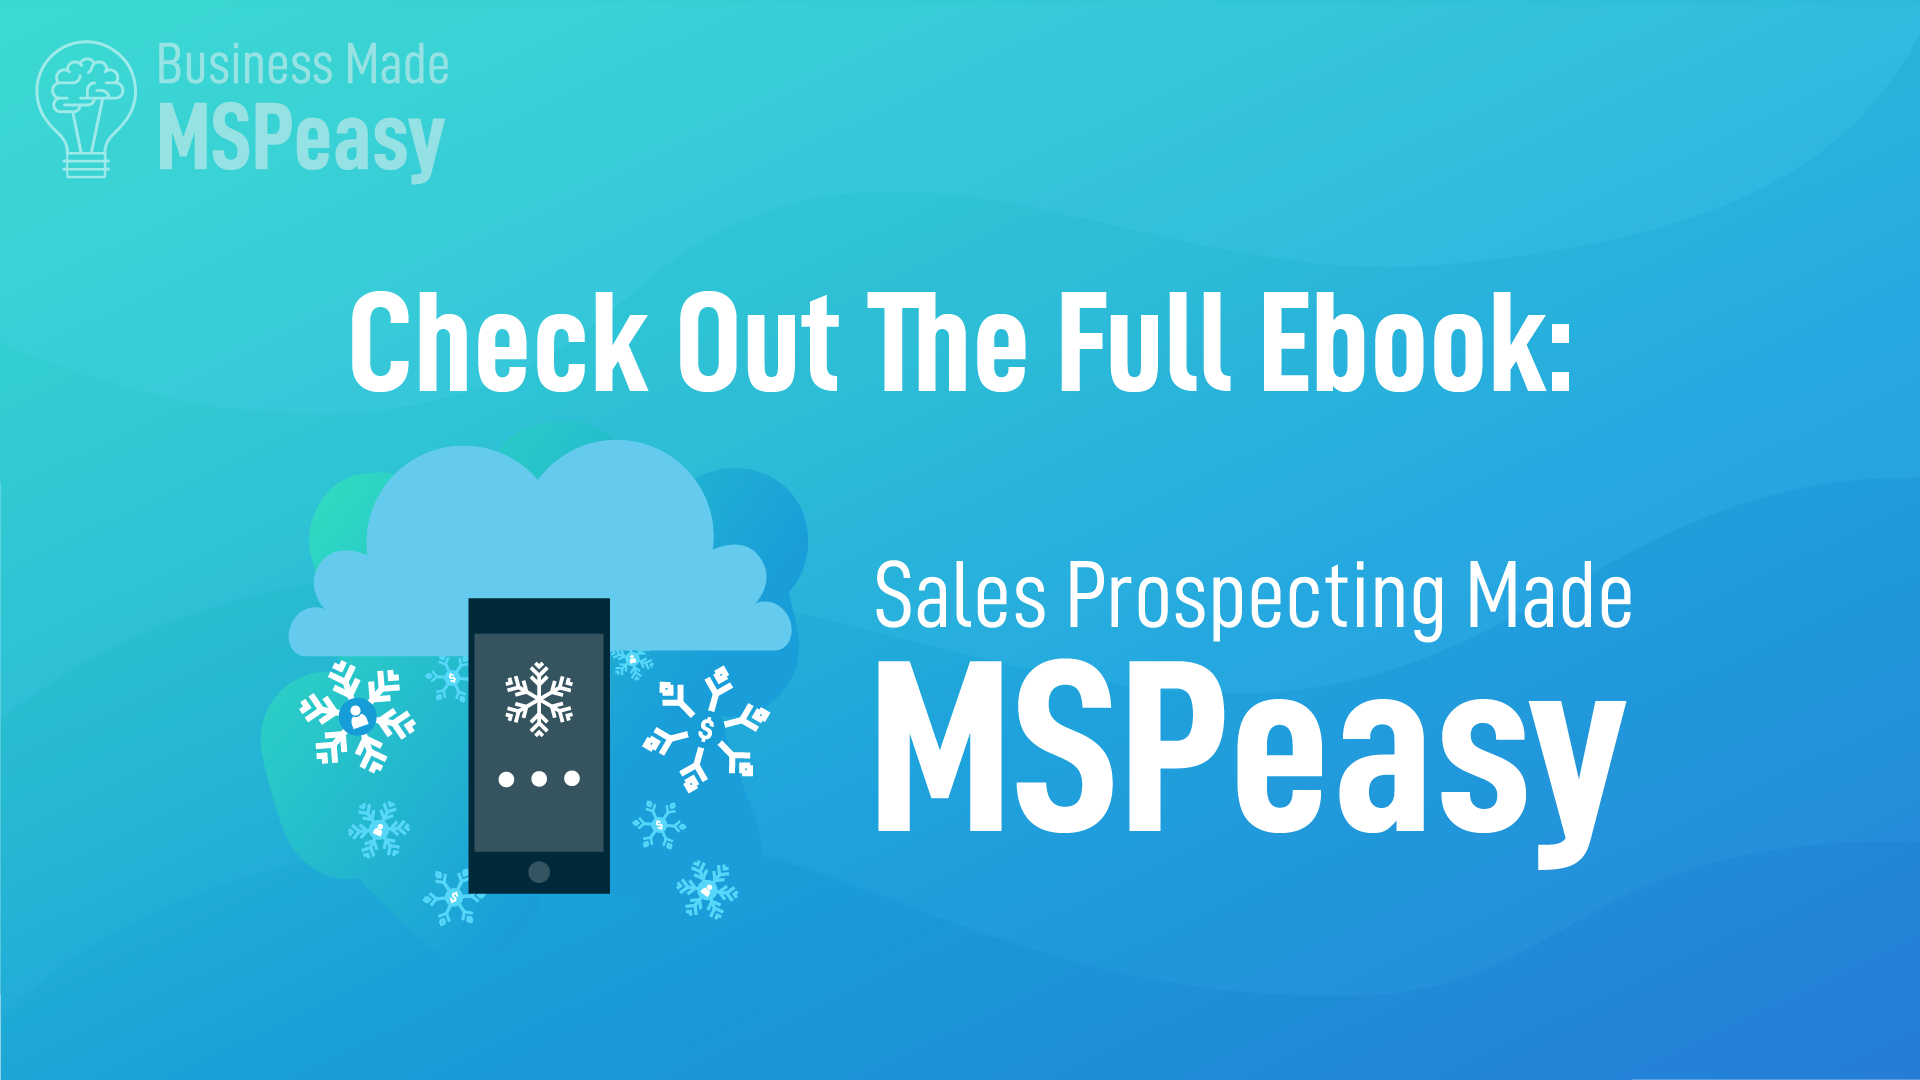 [Video] Cold Calling Made MSPeasy